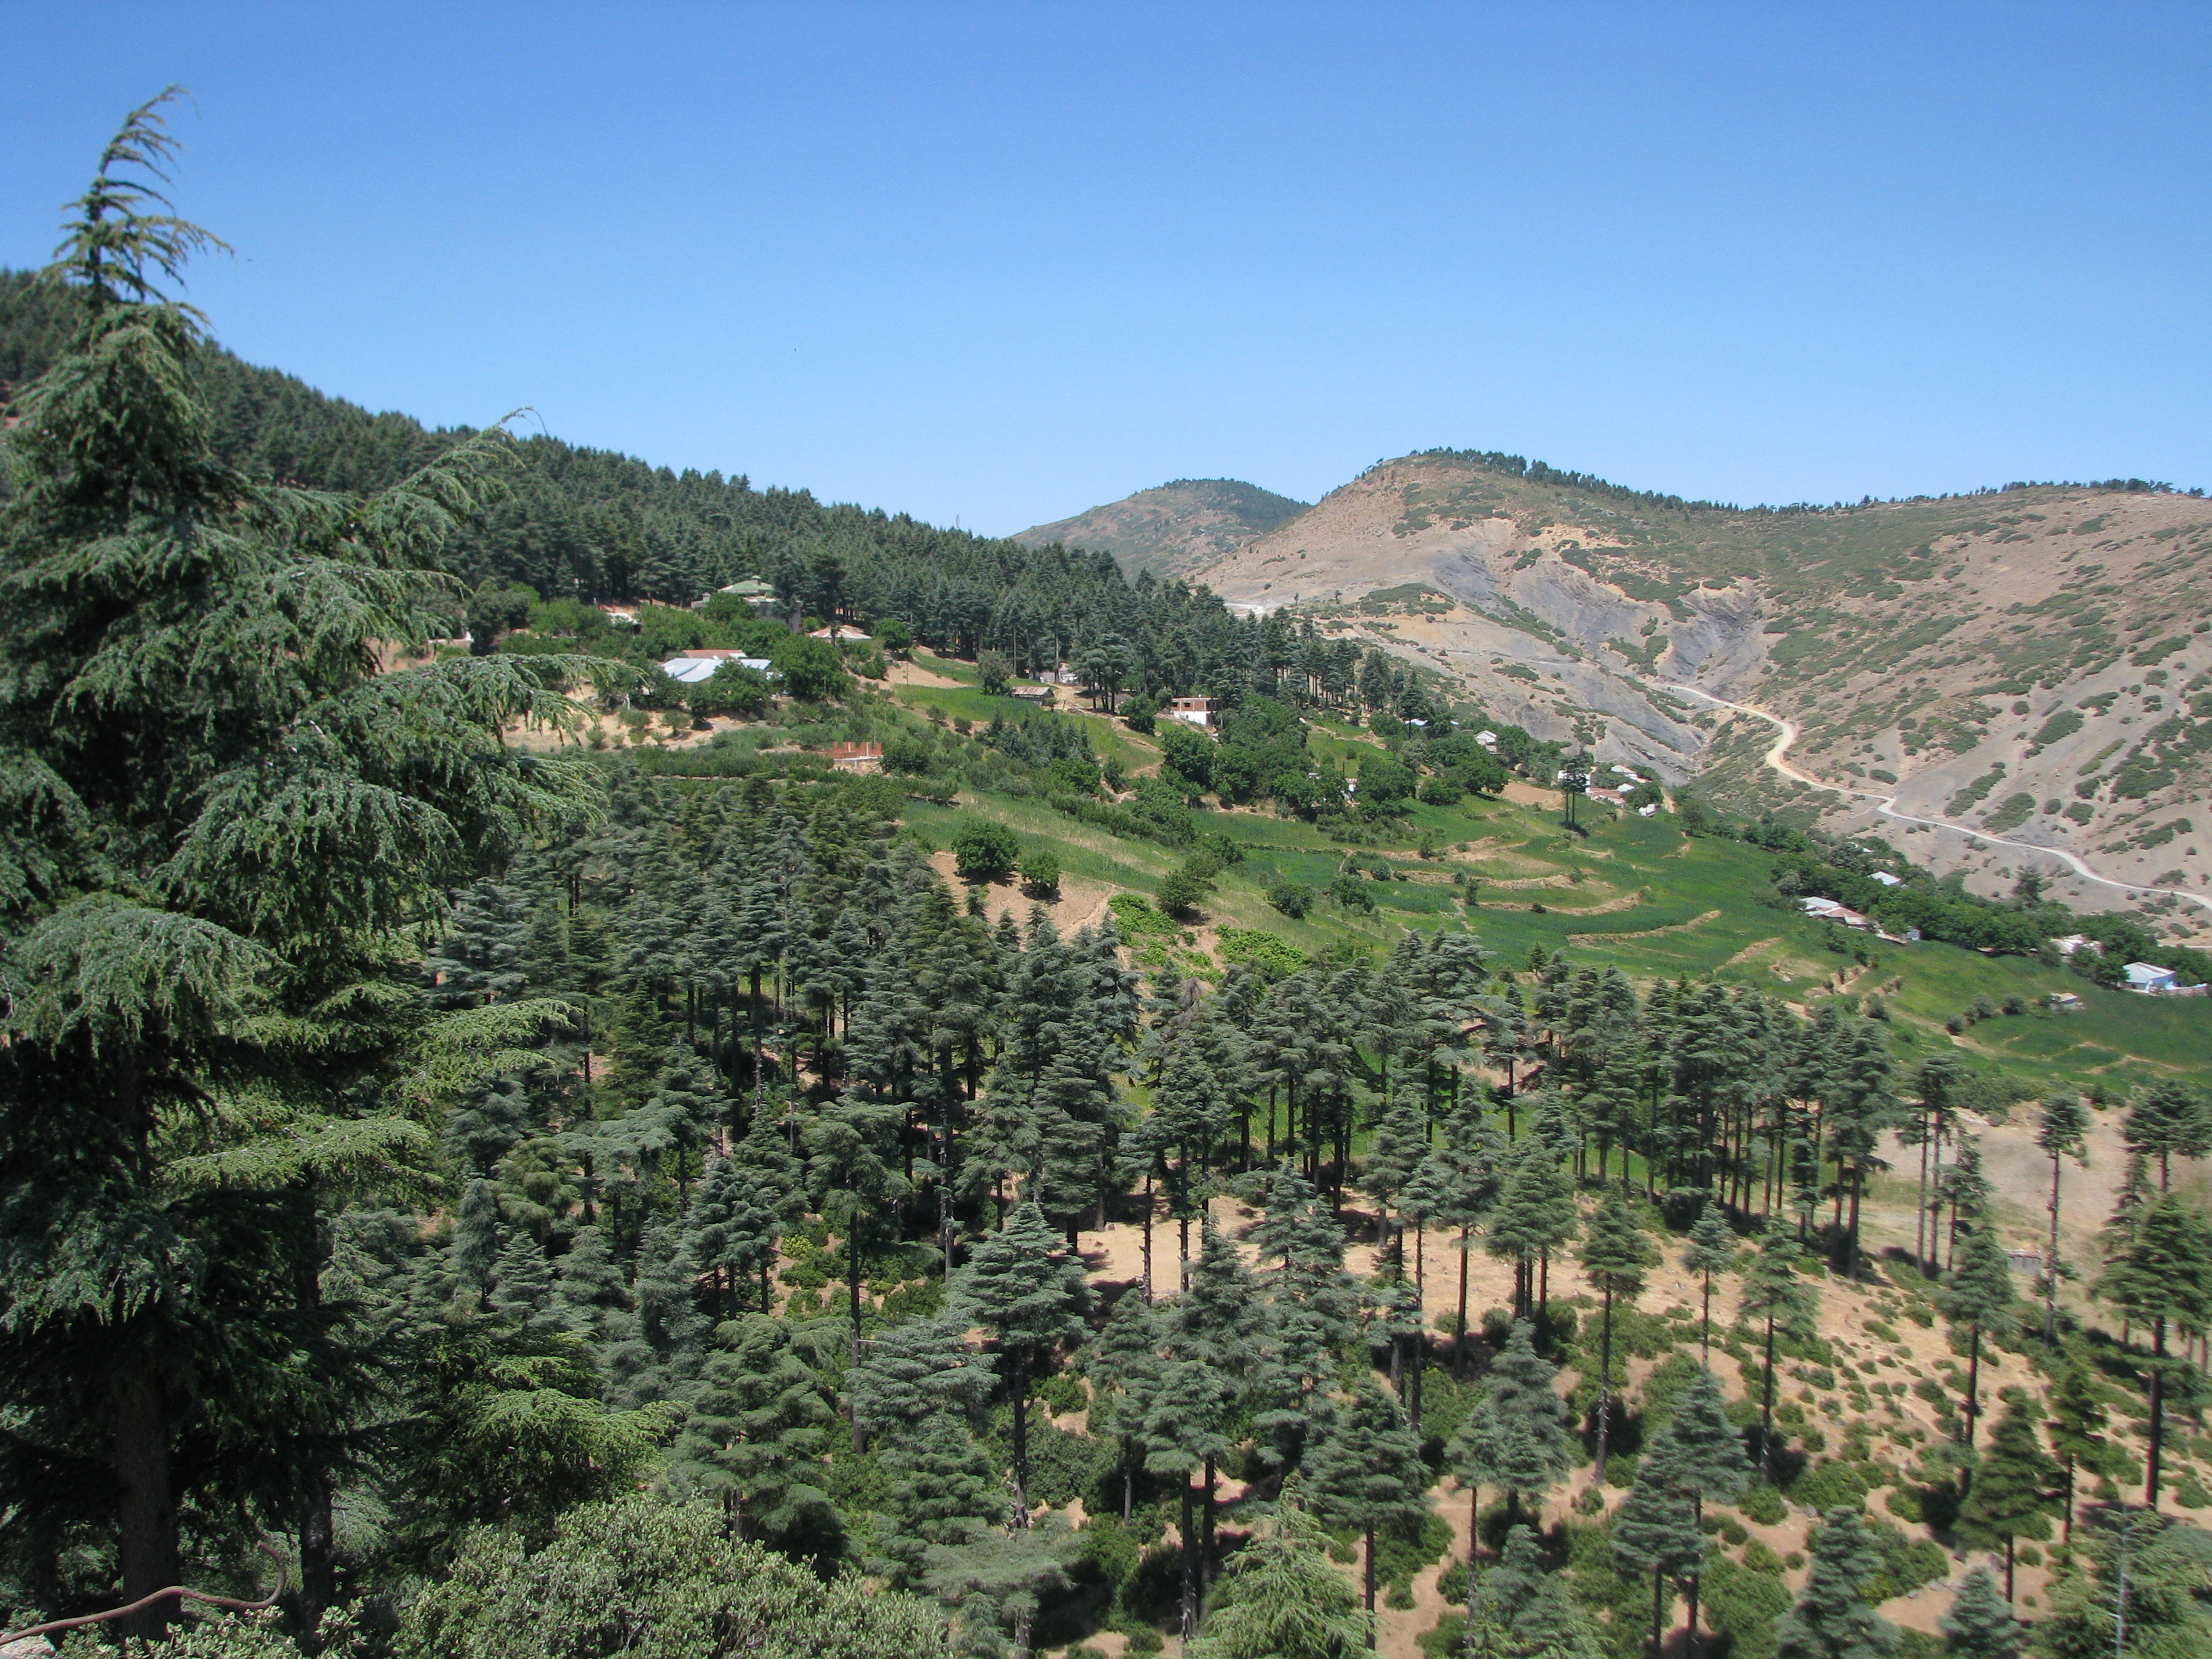 Morocco cannabis fields near Ketama 285